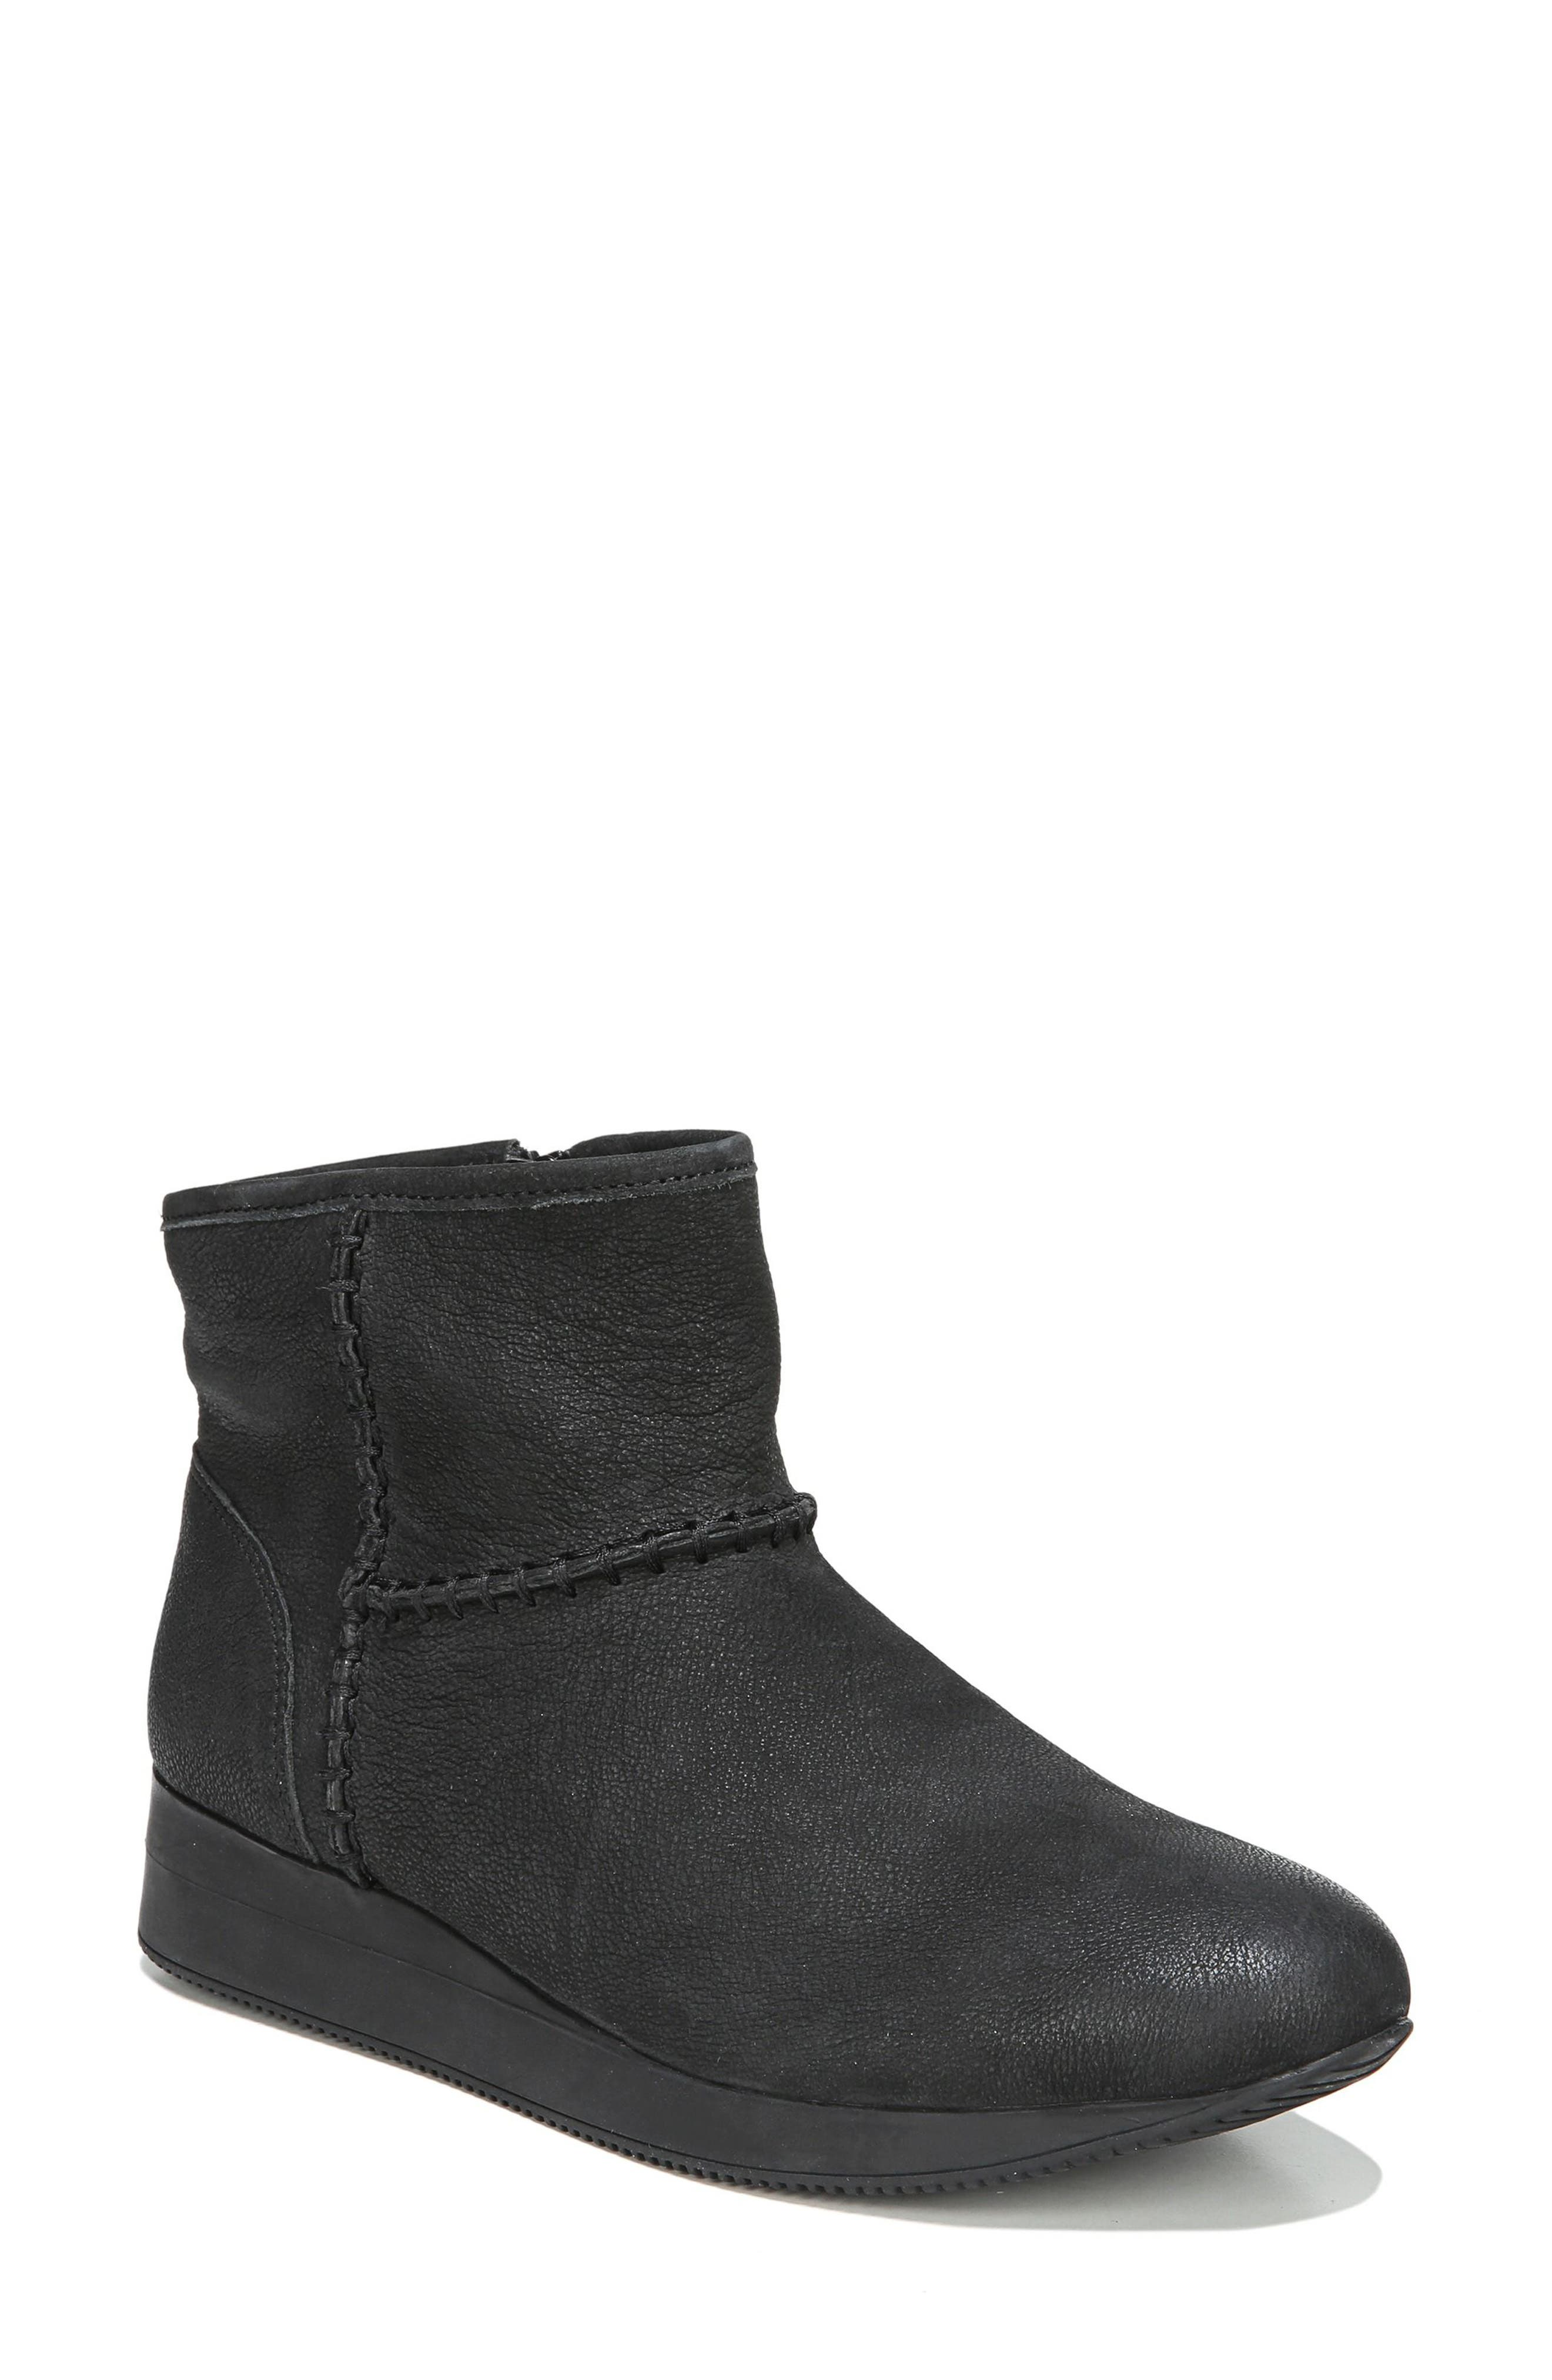 Julian Bootie,                         Main,                         color, 001